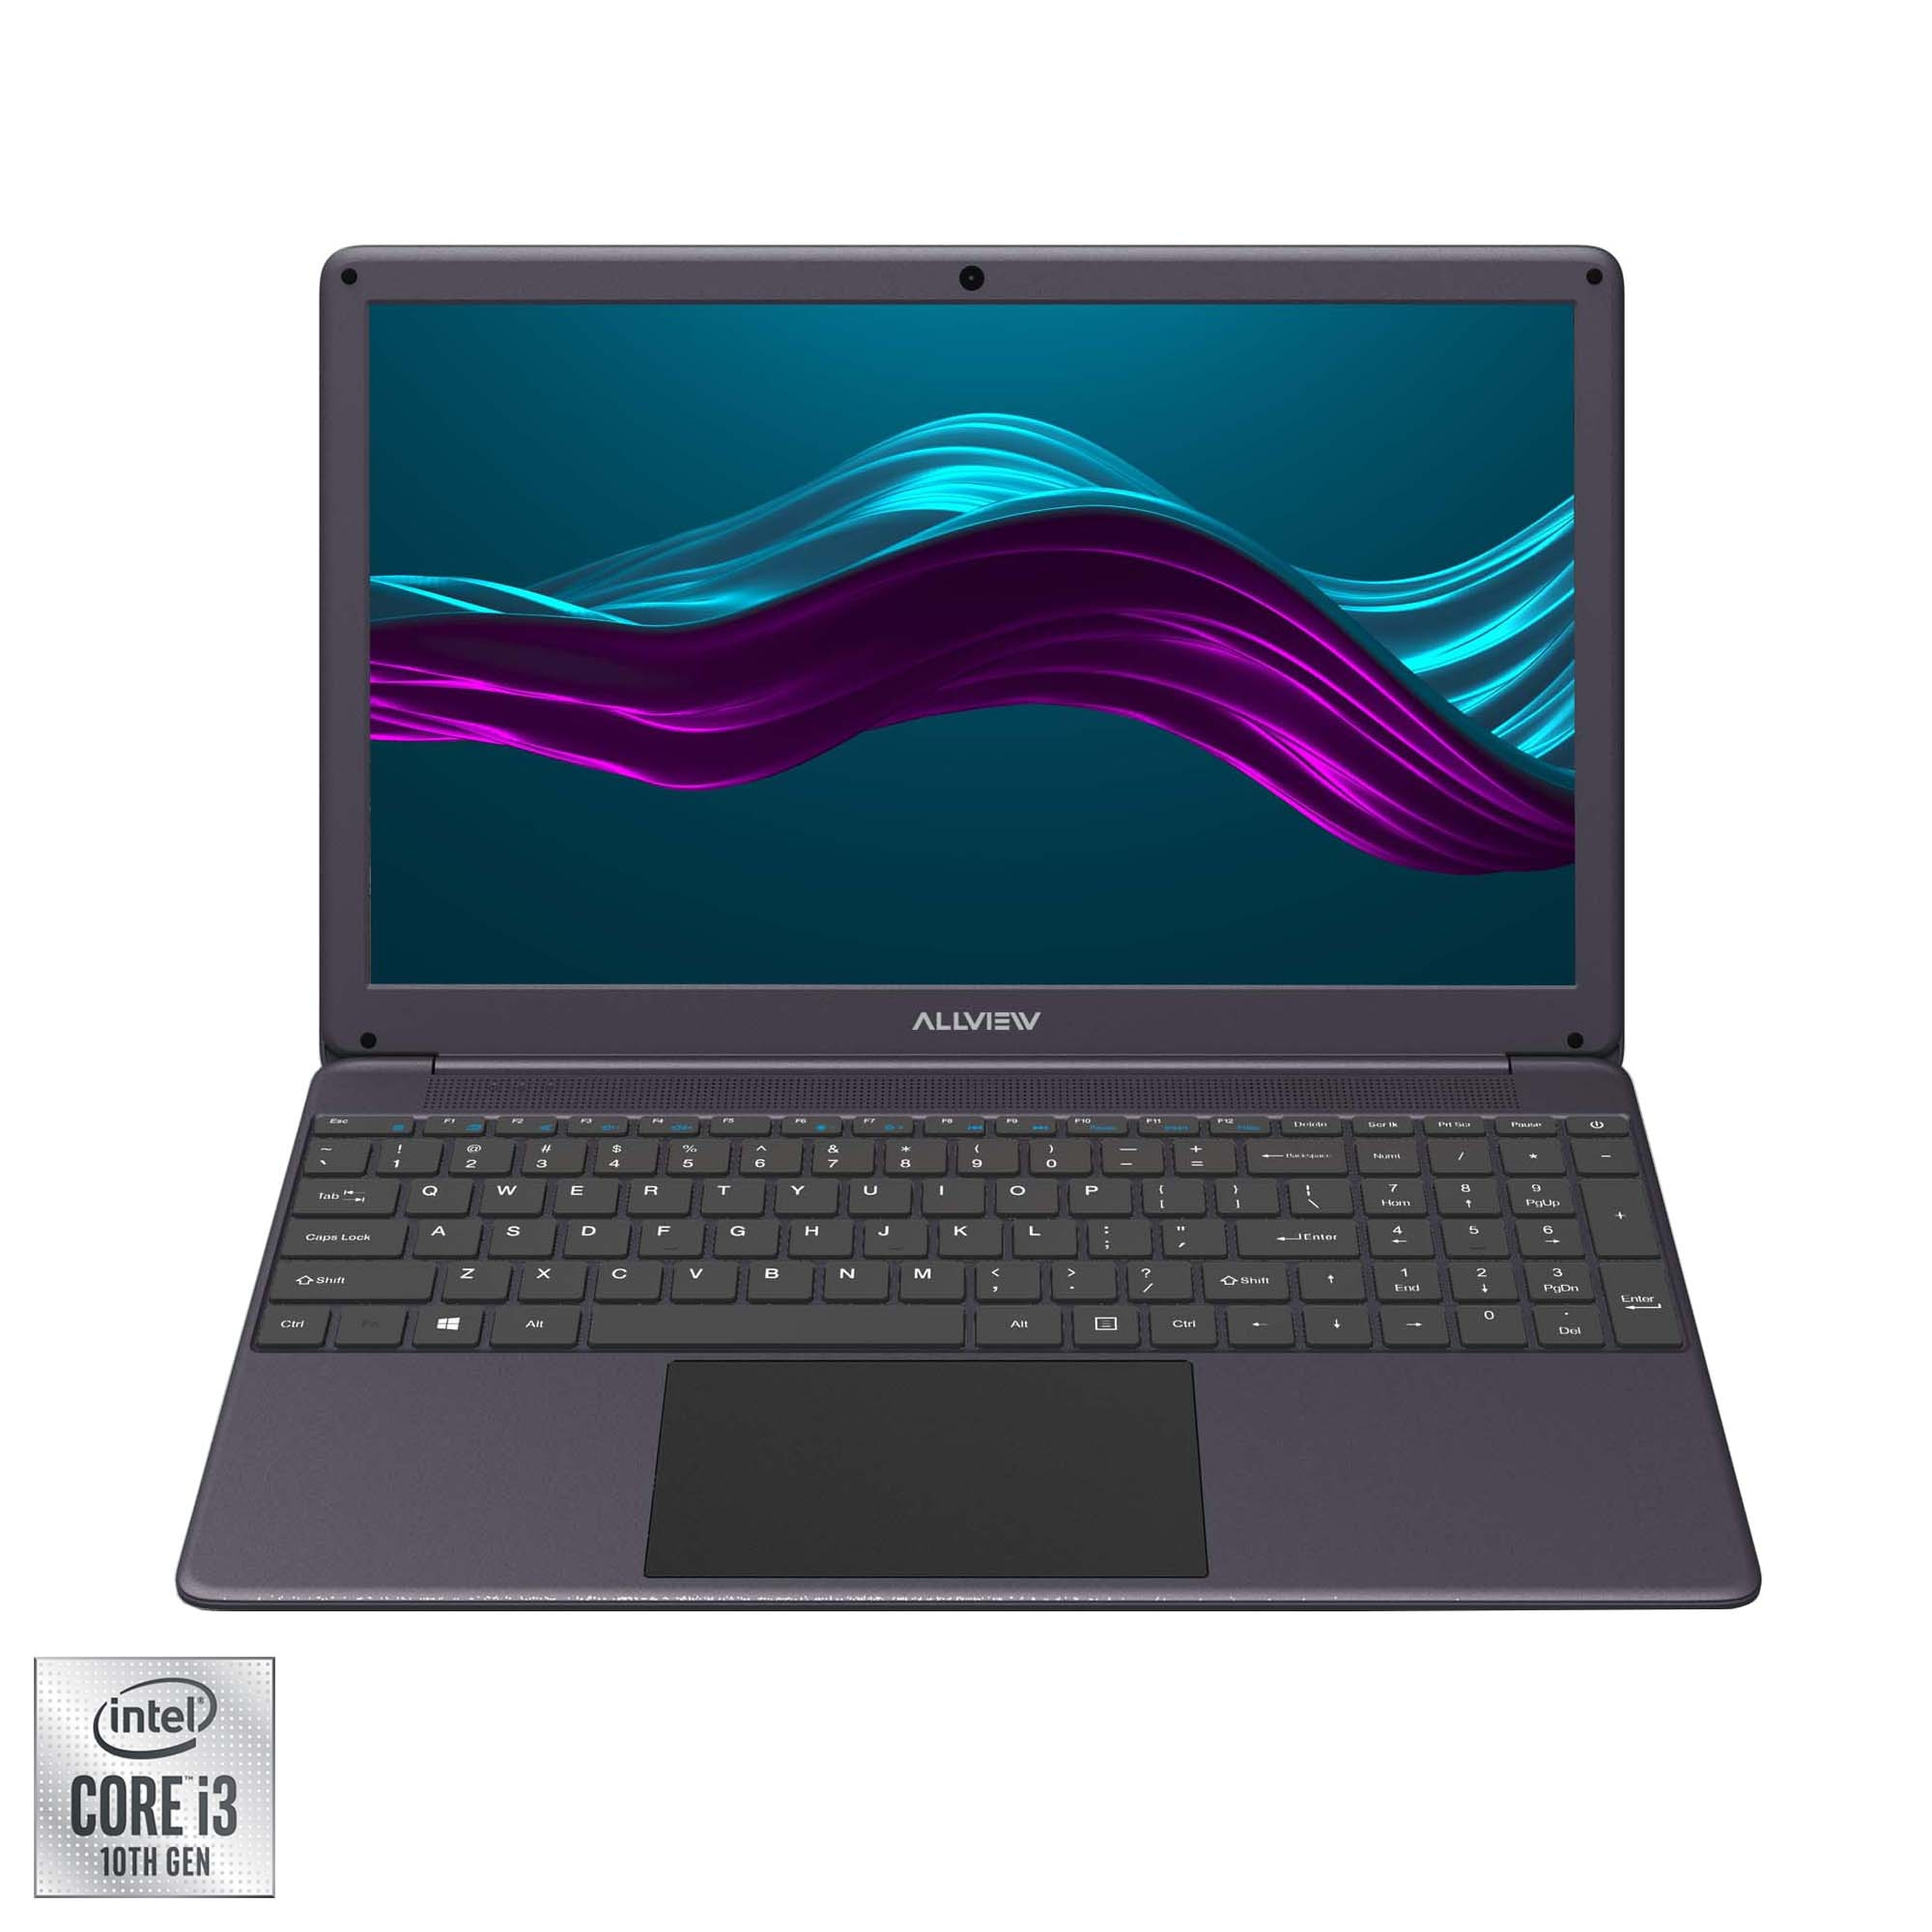 "Fotografie Laptop Allview Allbook I cu procesor Intel® Core™ i3-1005G1 pana la 3.40 GHz, 15.6"", Full HD, 8GB, 256GB SSD, Intel UHD Graphics, Free DOS, Grey"